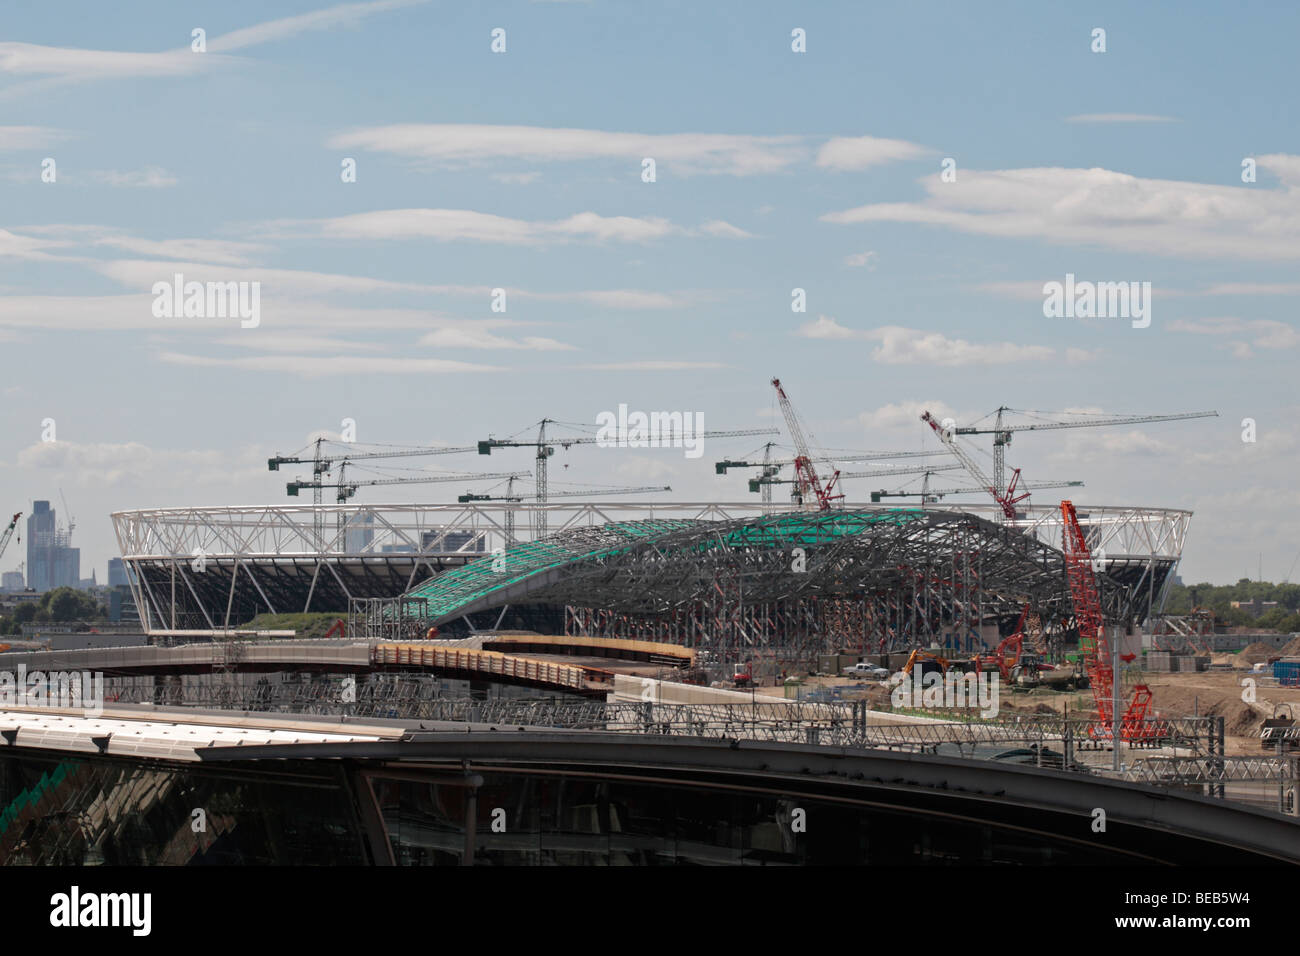 View from close to Stratford Station towards the Athletics and Aquatics stadiums at the London 2012 Olympic site - Stock Image